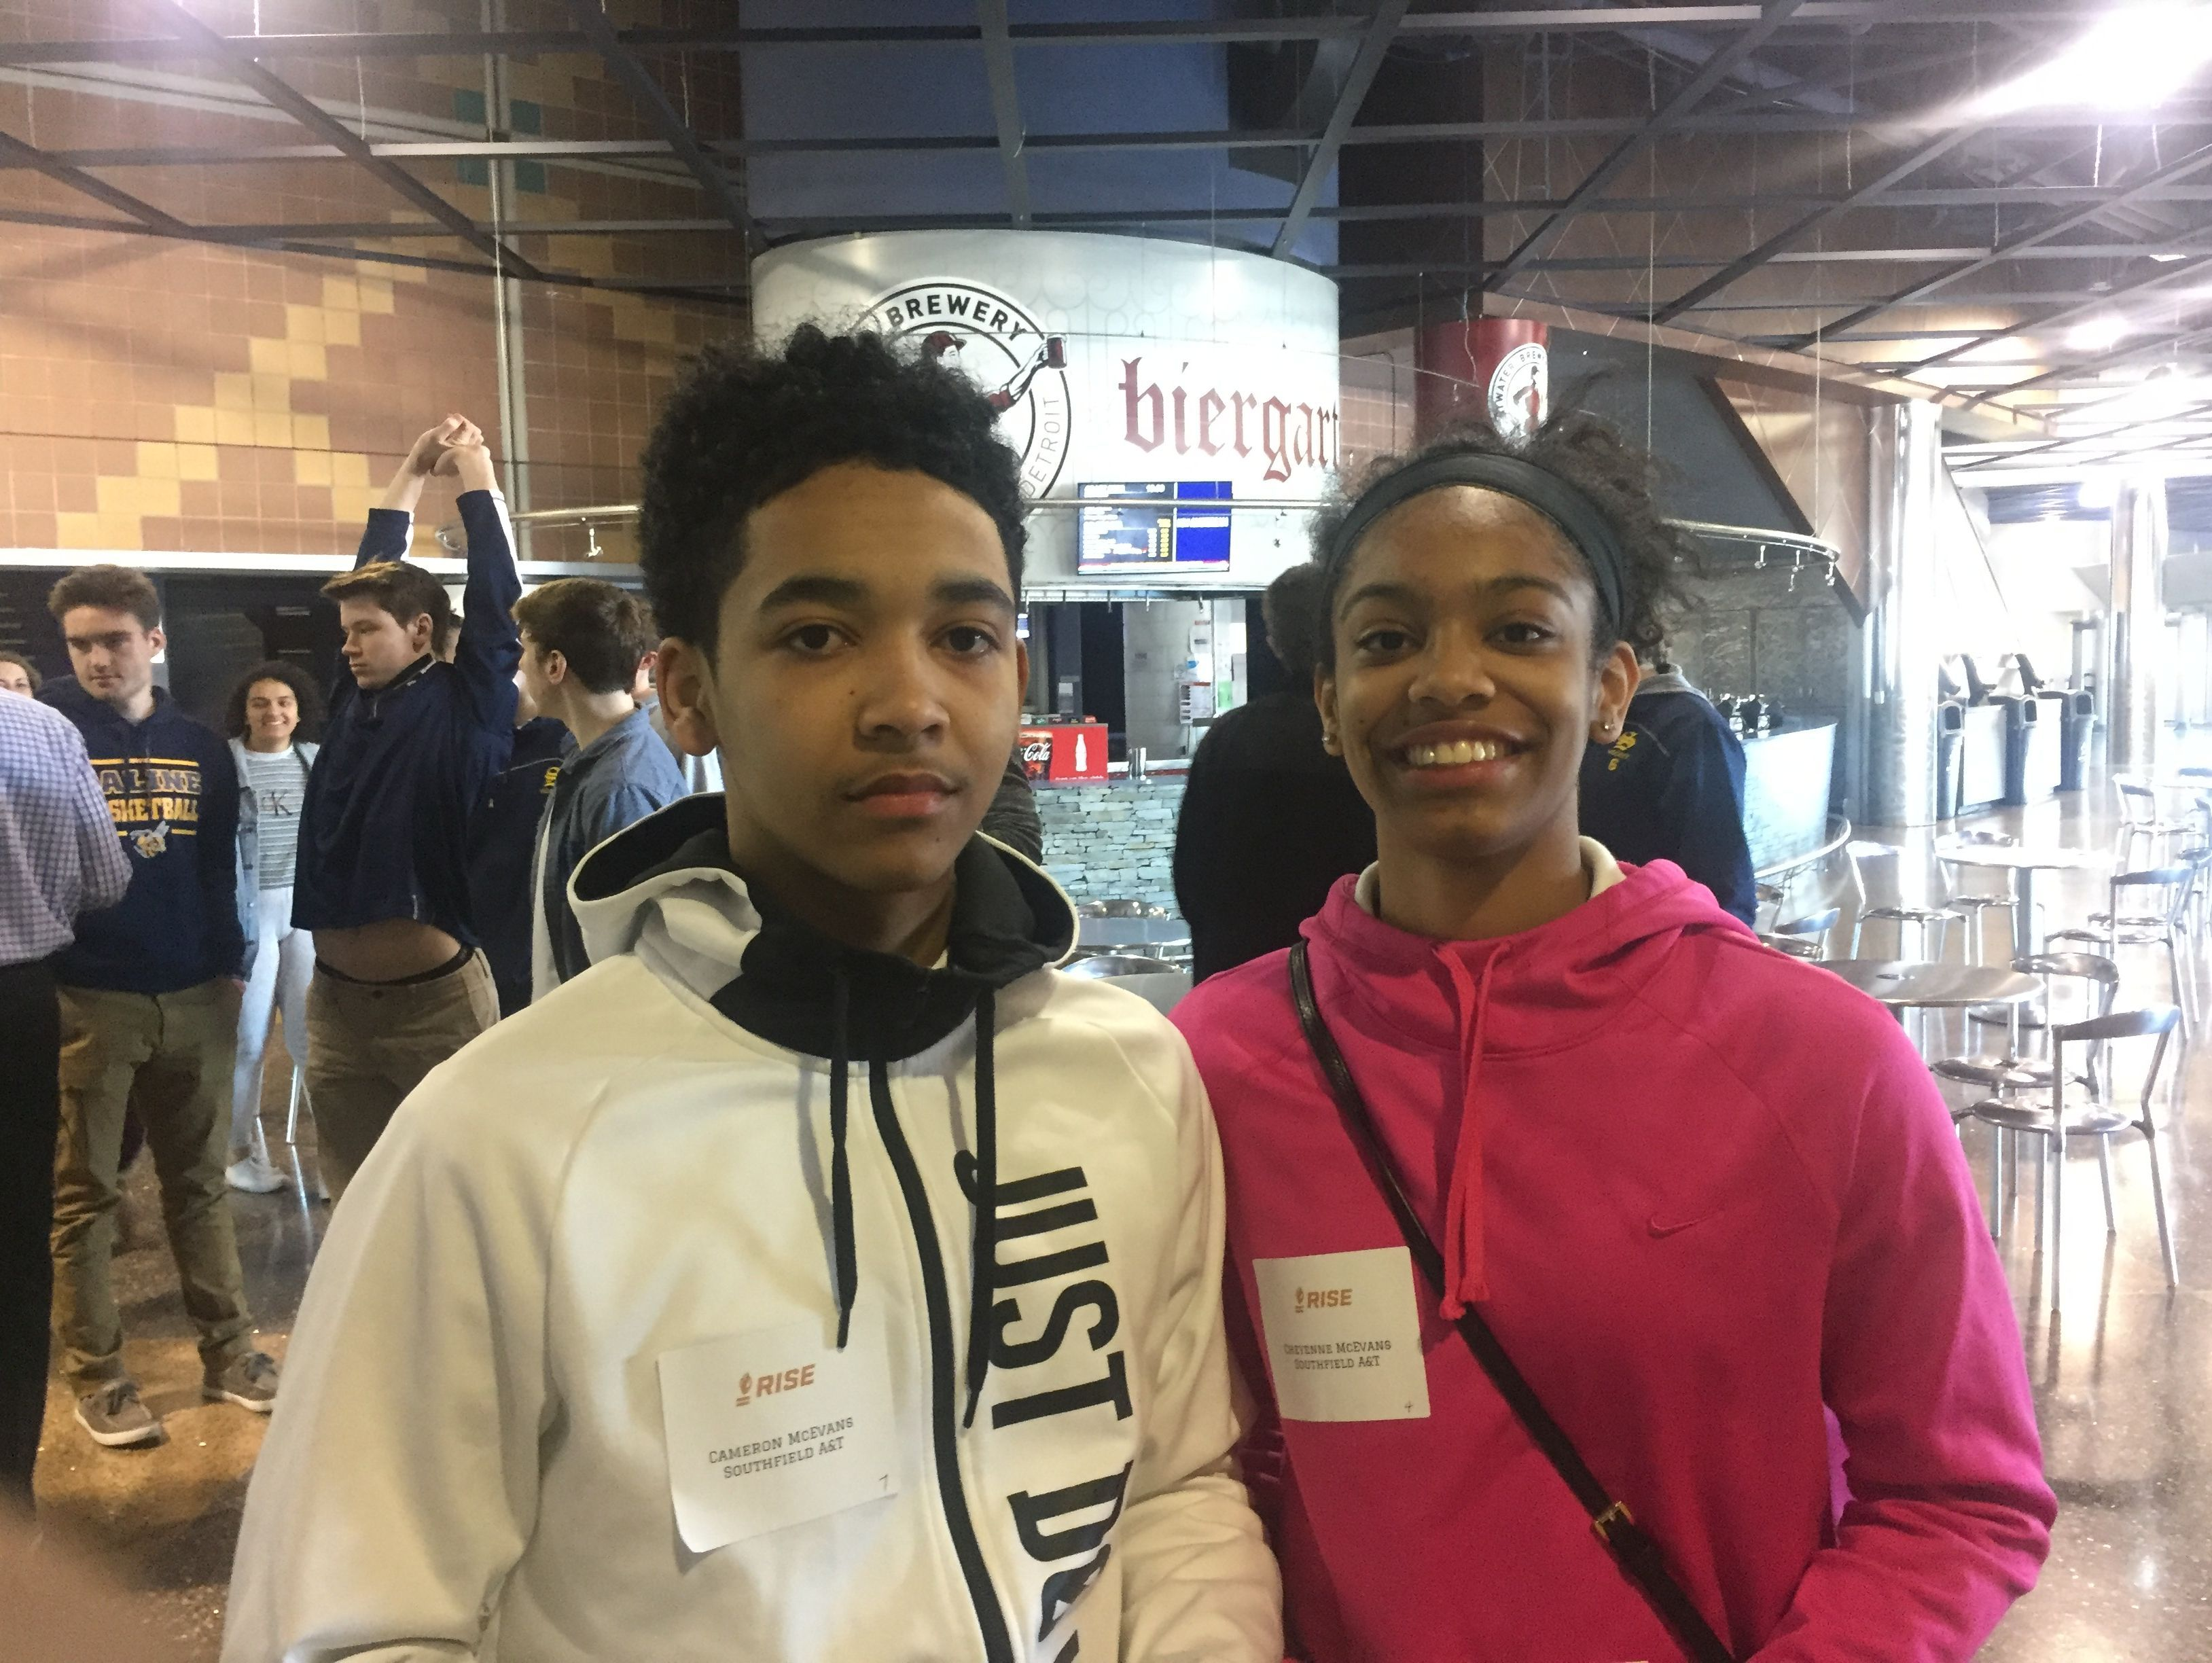 Cameron and Cheyenne McEvans, students at Southfield A&T High School, participated in the Ross Initiative in Sports for Equality